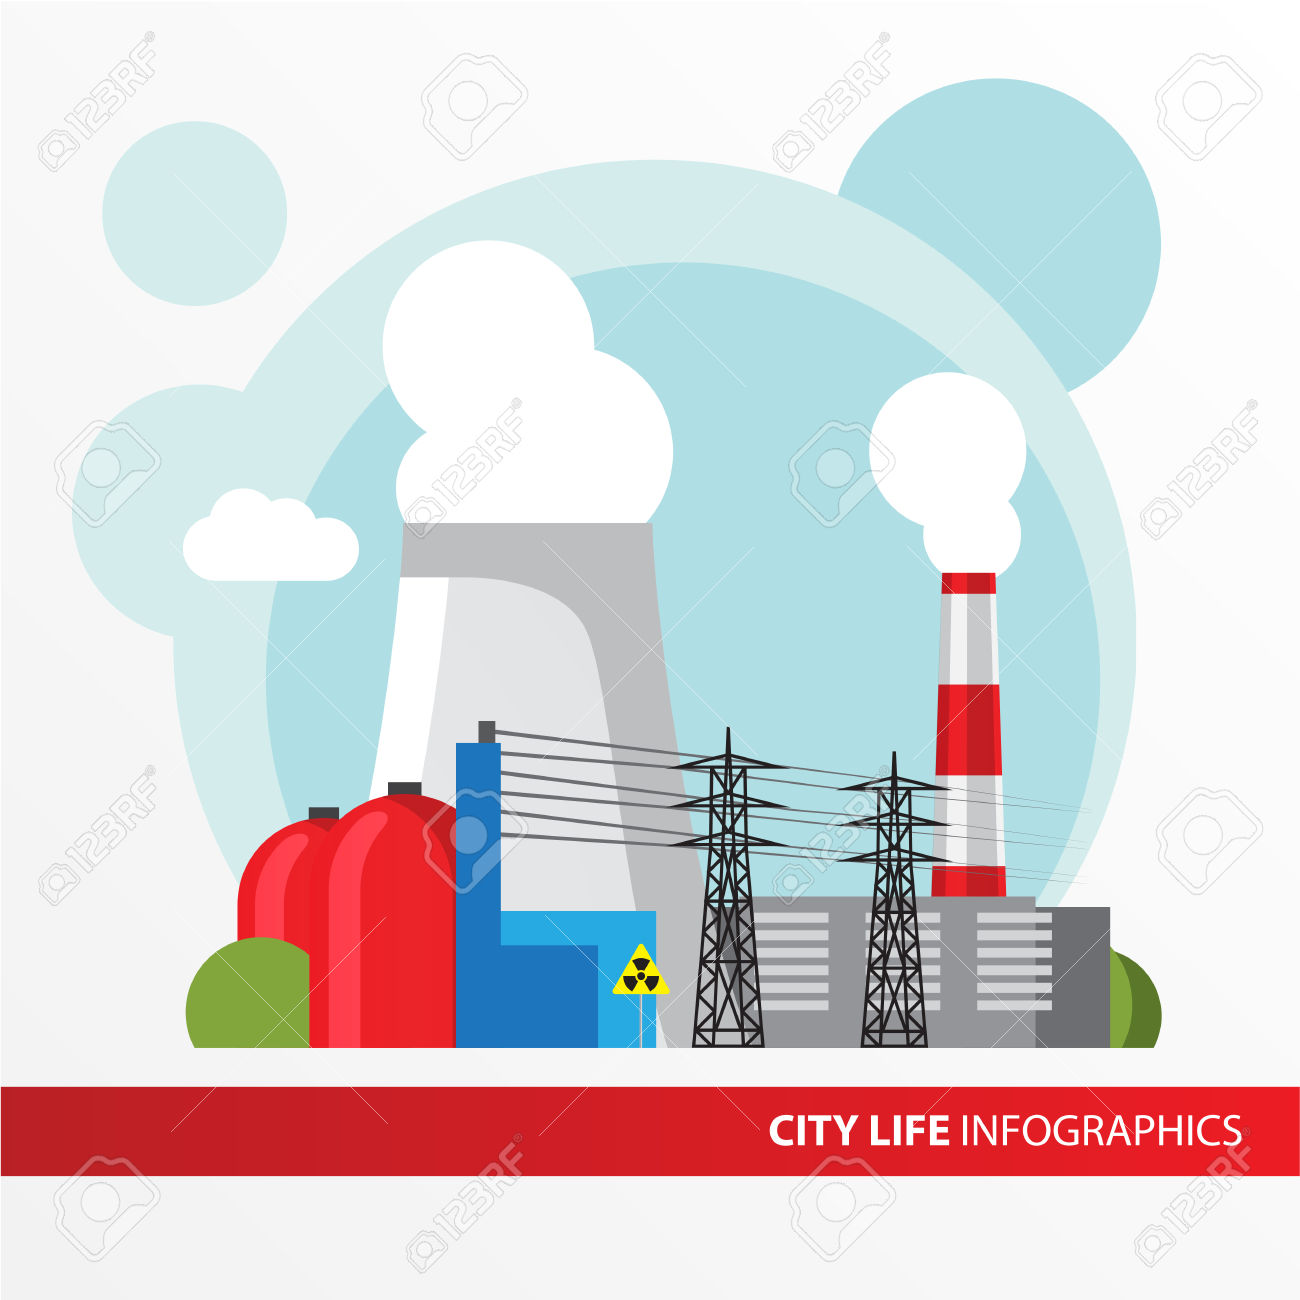 Nuclear Power Plant. Colorful Illustration In A Flat Style. City.